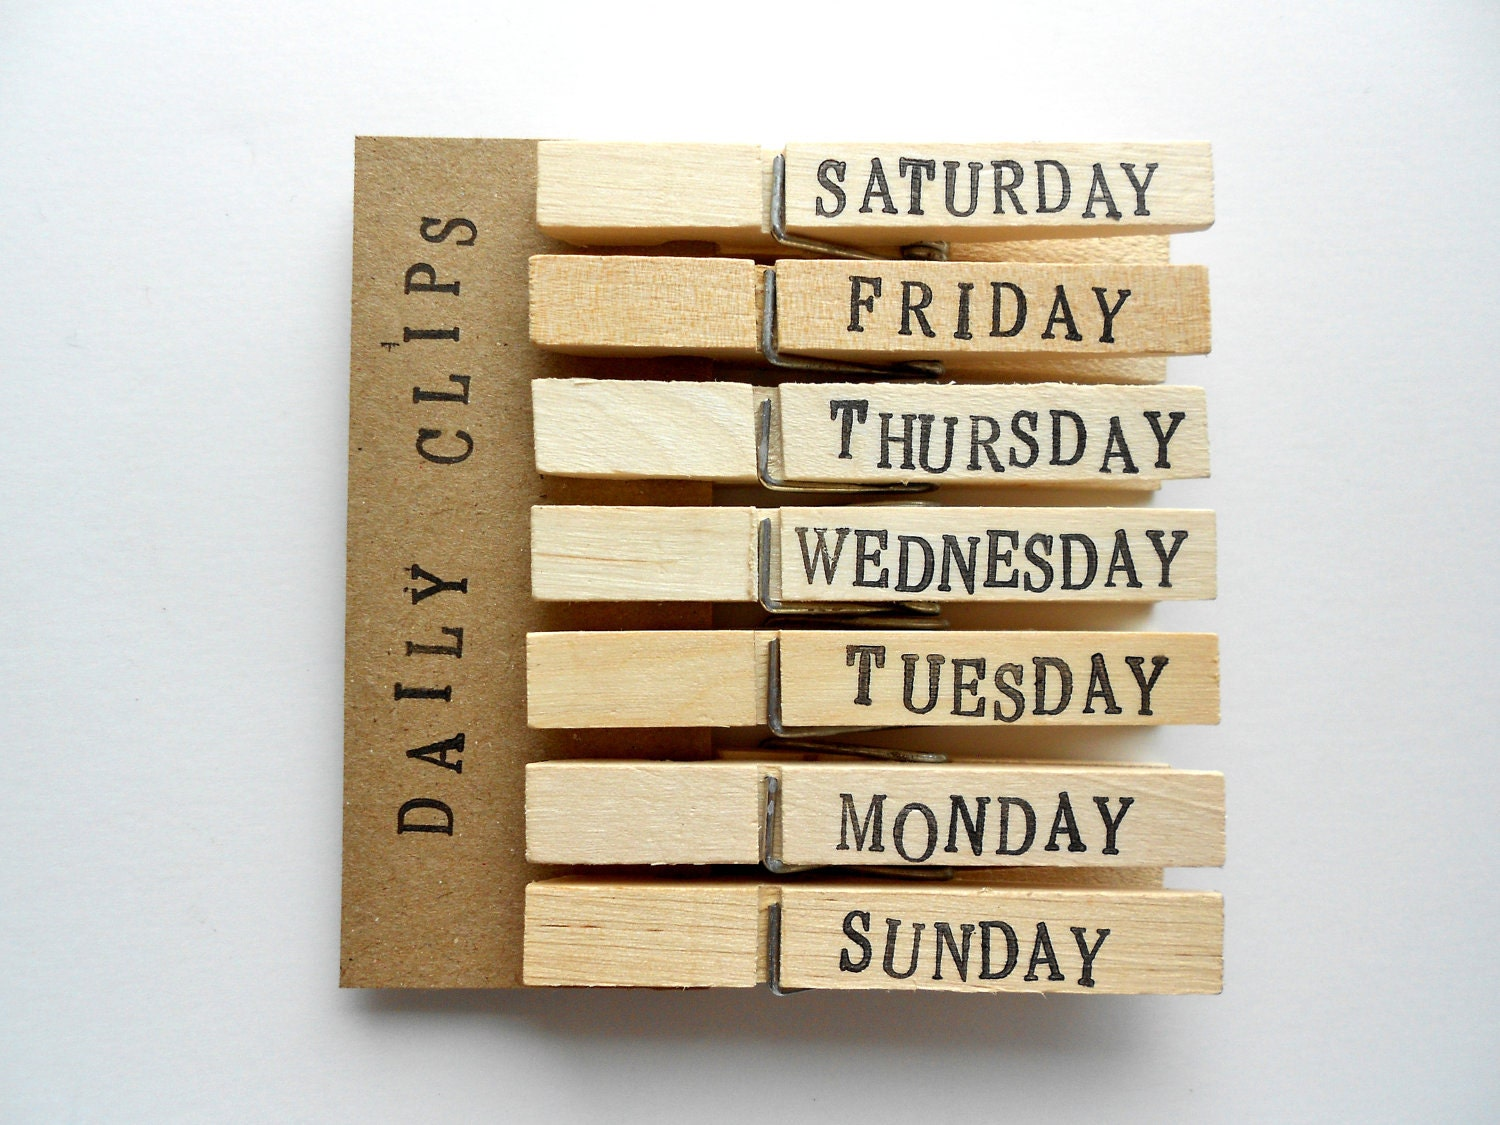 Days of the Week Clothespins - Hand Stamped - Set of 7 - Large - Free US Shipping